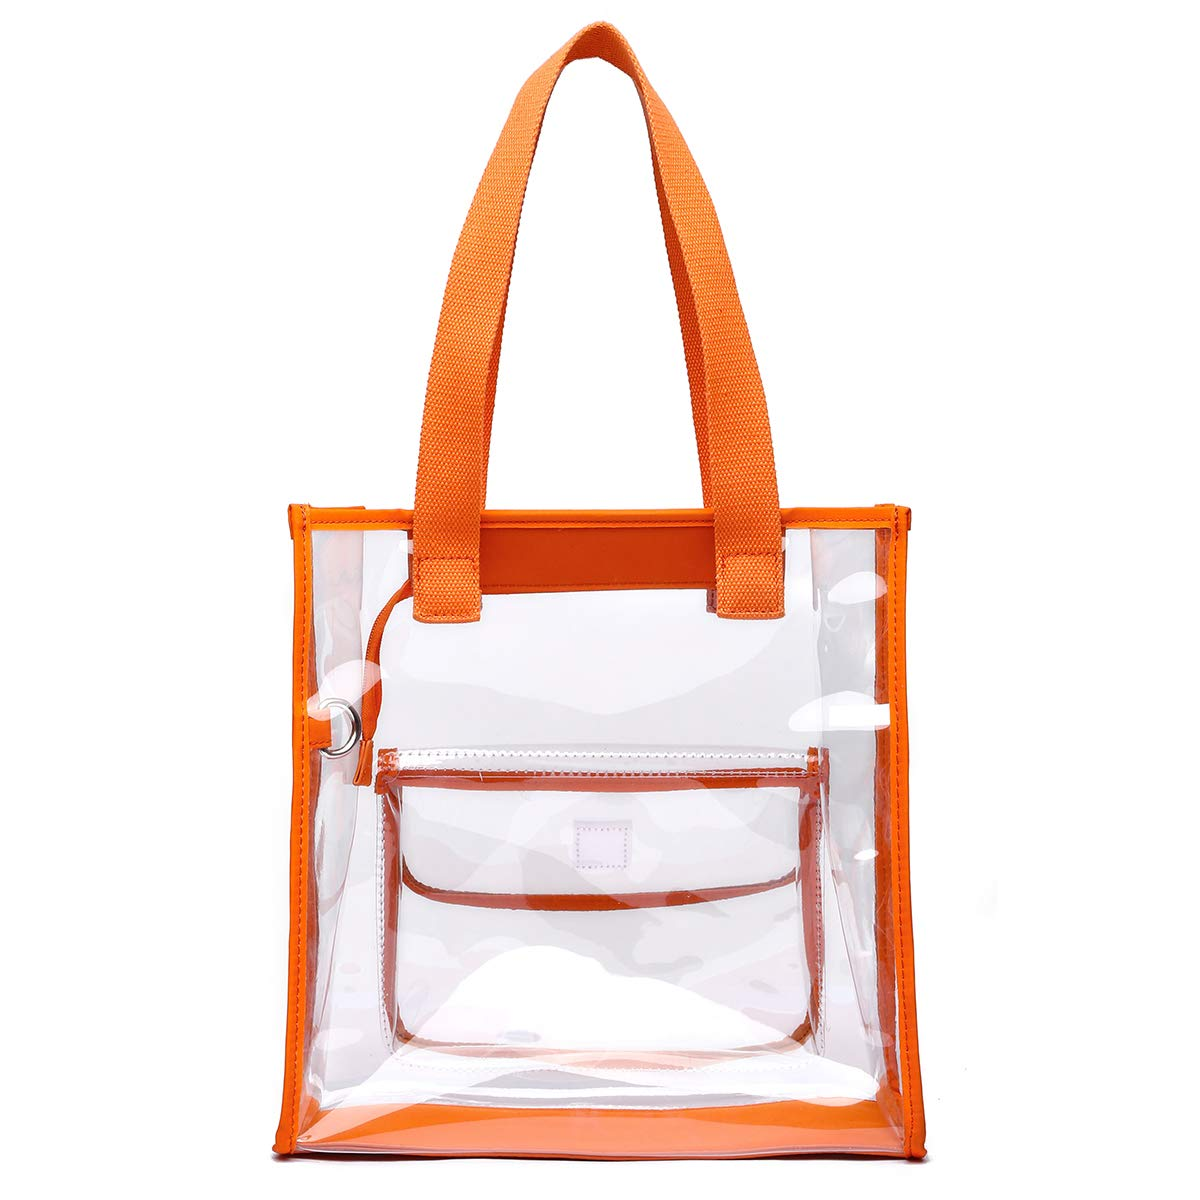 Clear Bag Set Tote and Pouch Combo 12 X 12 X 6 NFL Stadium Approved Shoulder Bag